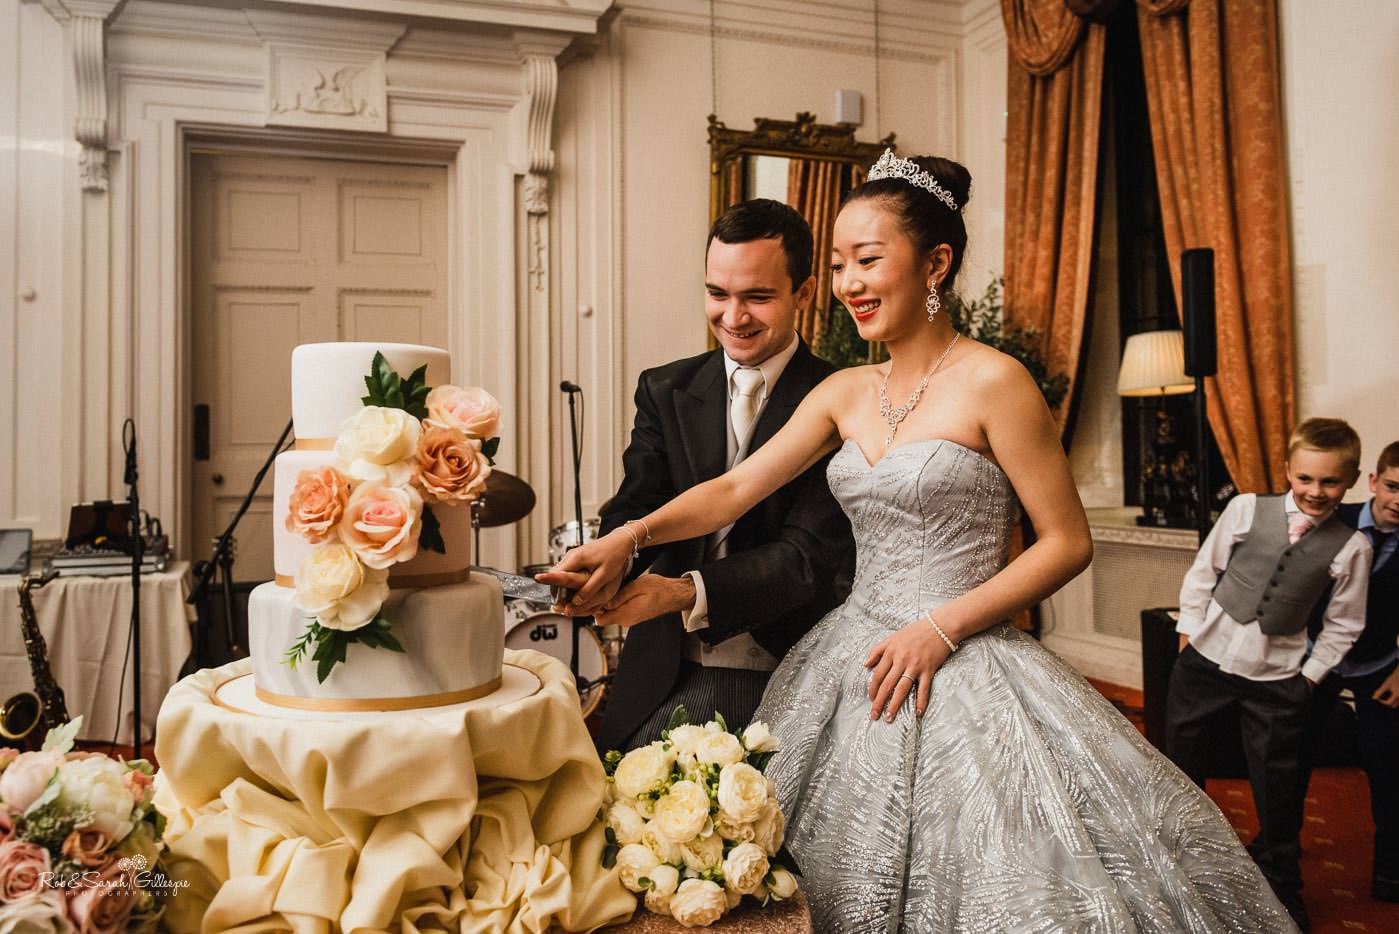 Bride and groom cut wedding cake at Coombe Abbey